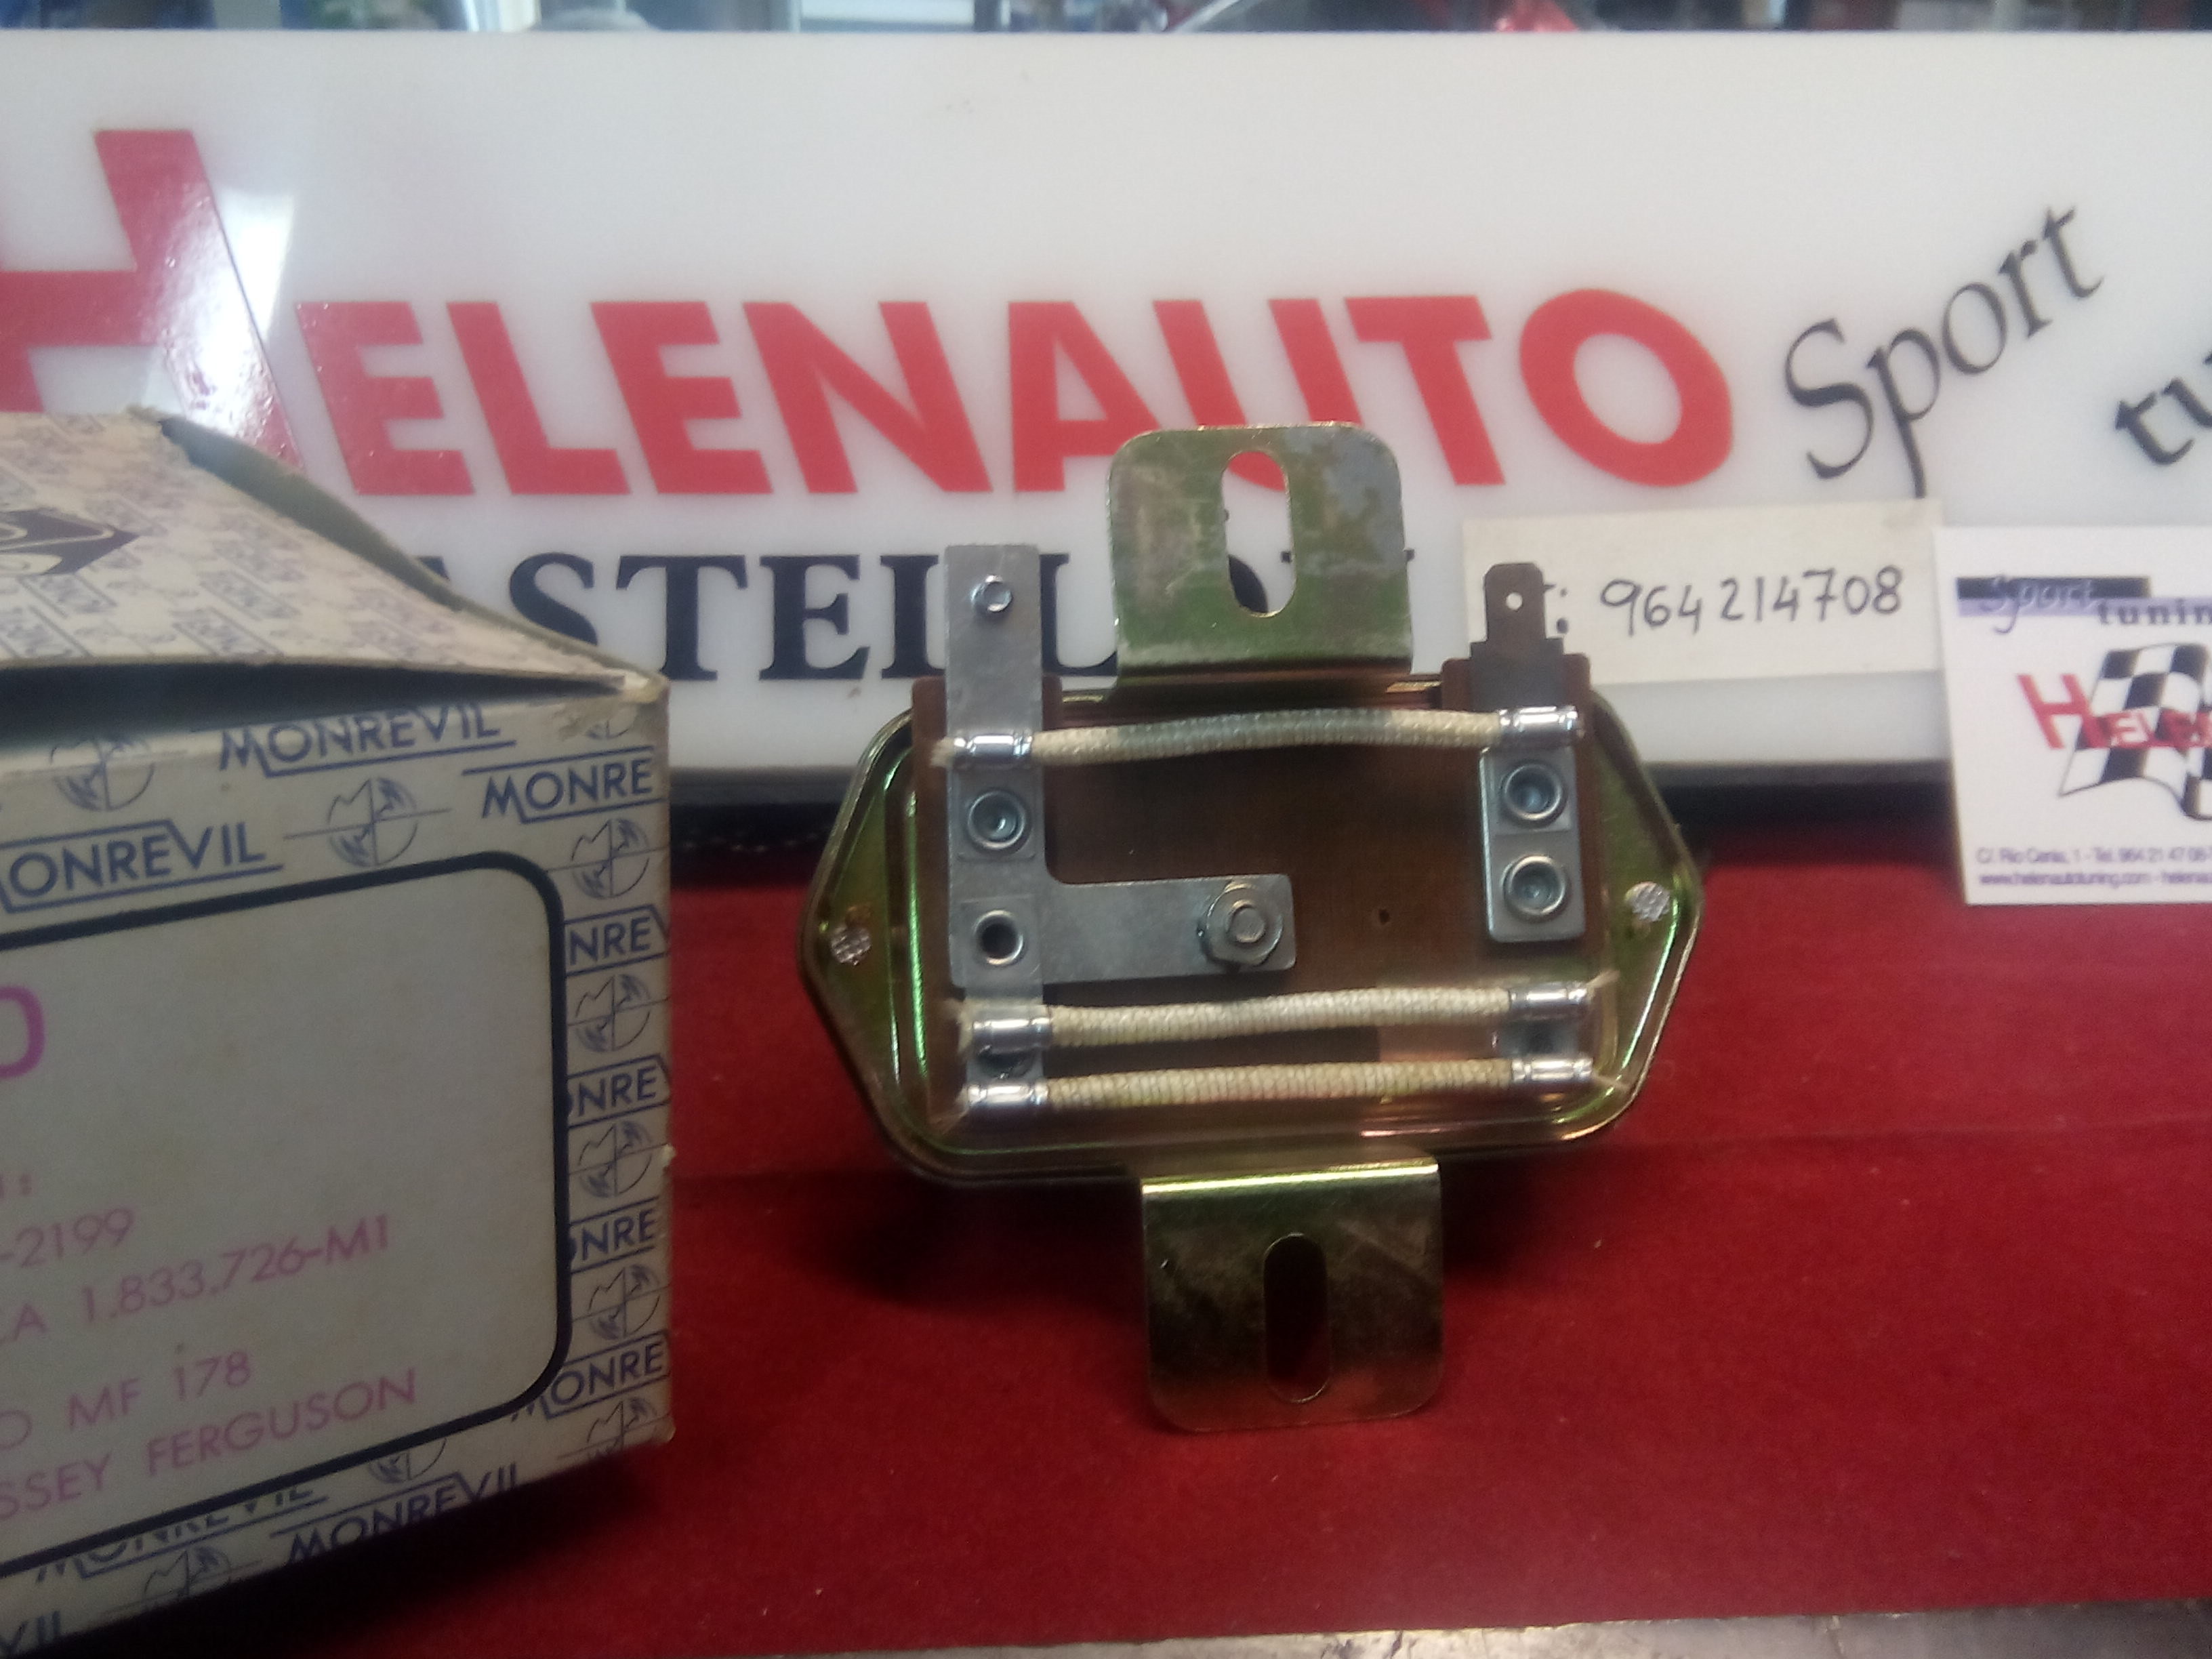 REGULADOR ALTERNADOR TRACTOR EBRO MASSEY REF. RA-400 MONREVIL